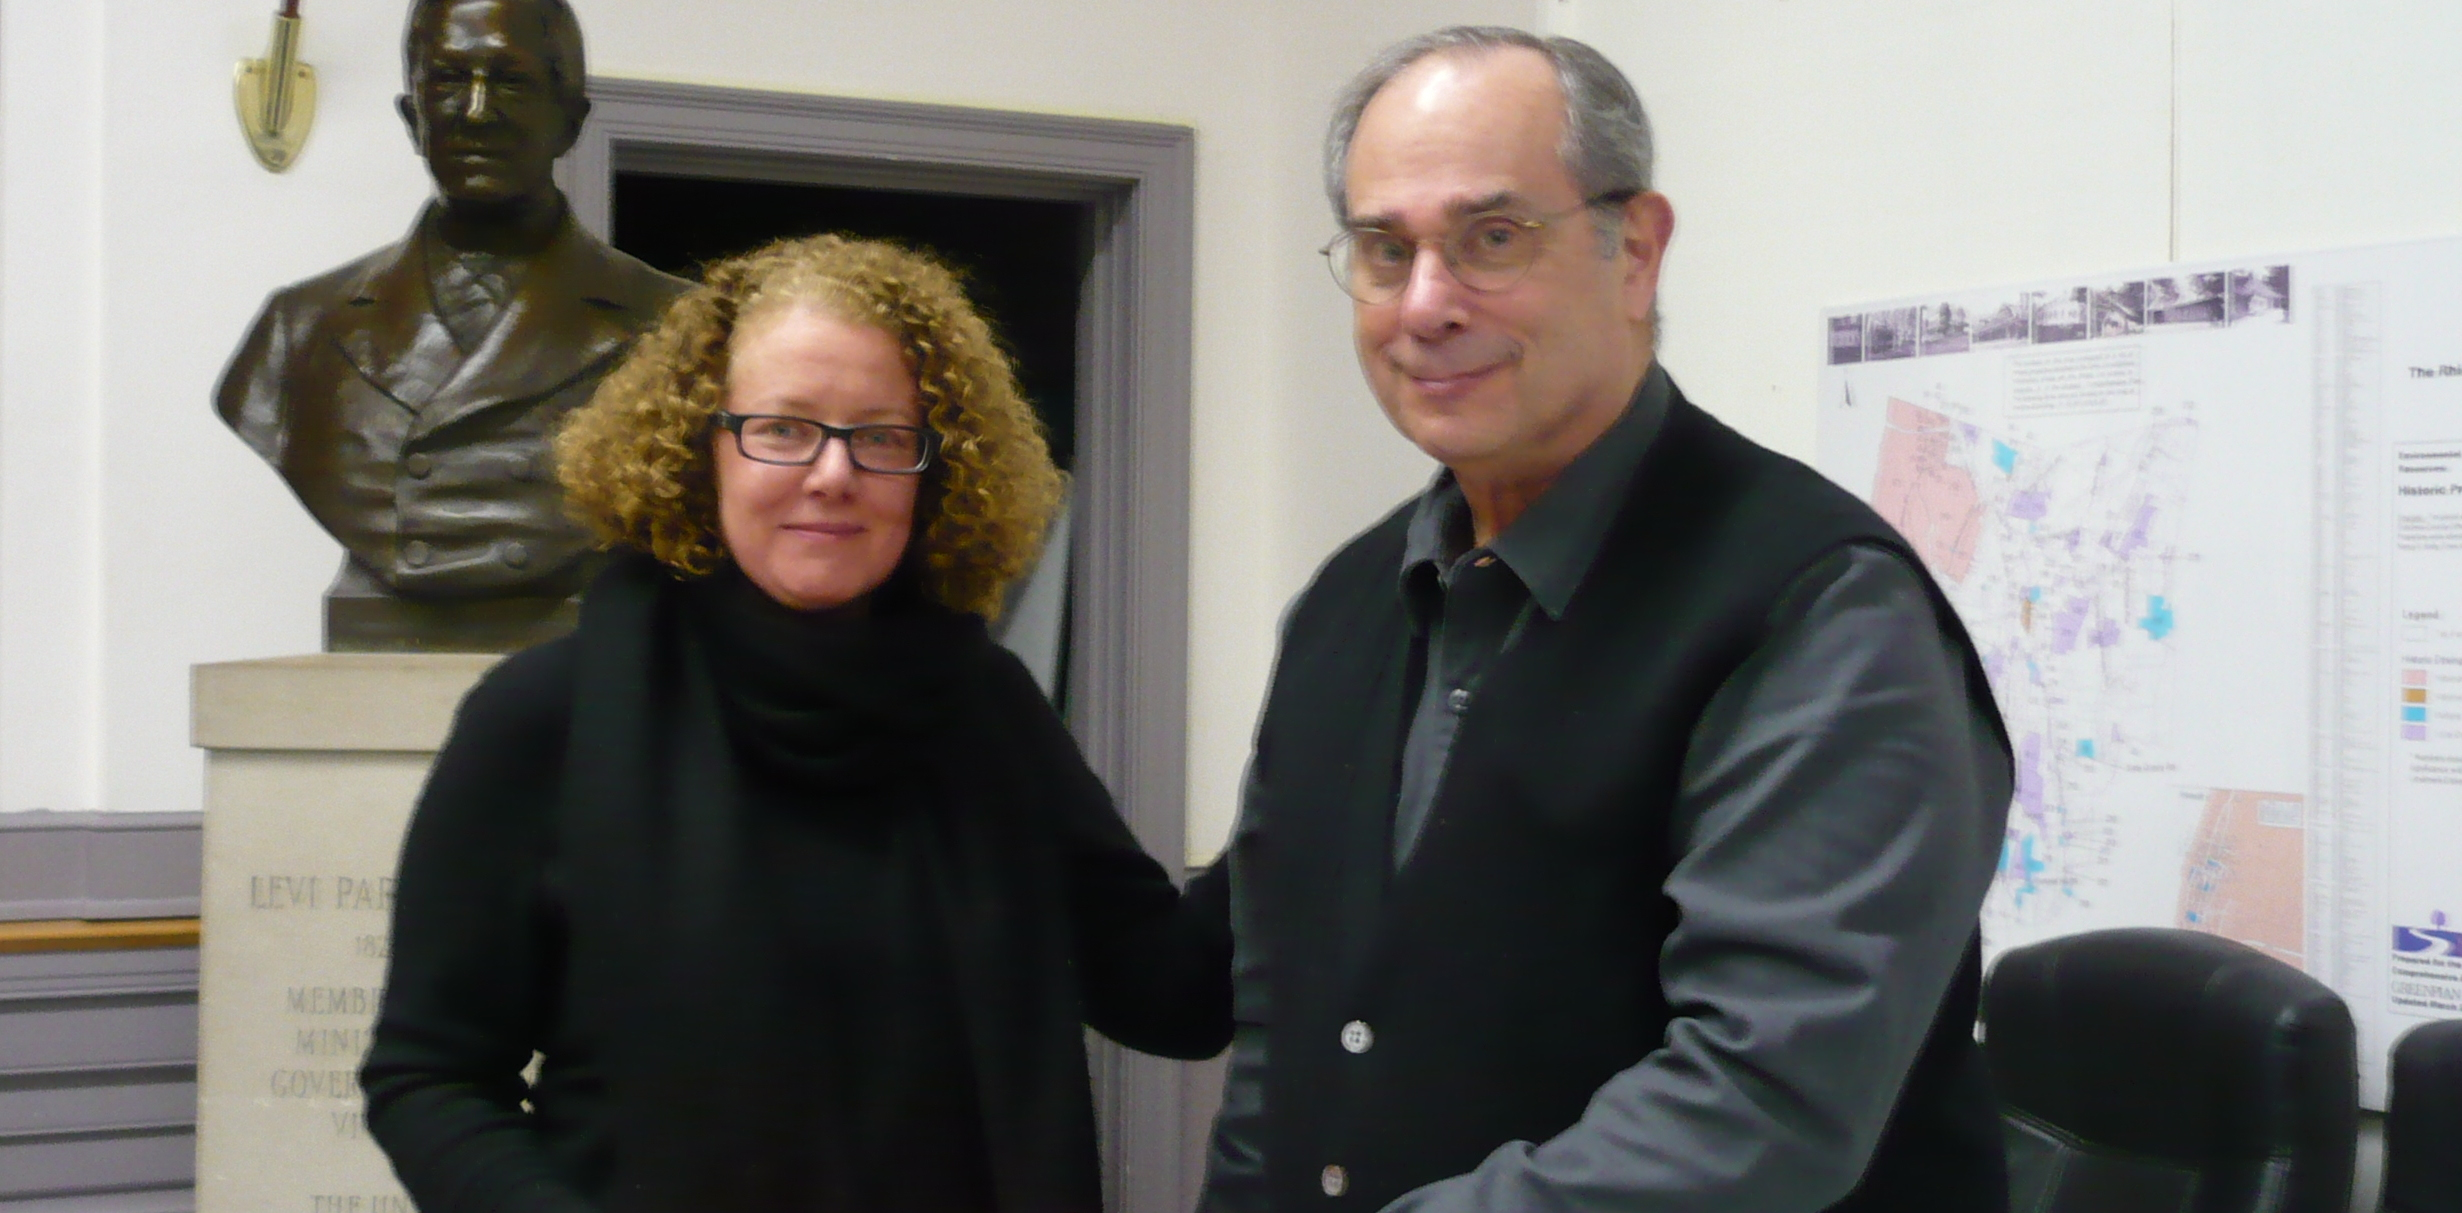 Supervisor Elizabeth Spinzia with new board member Allan Scherr at Jan. 27 board meeting. Sarah Imboden/The Observer